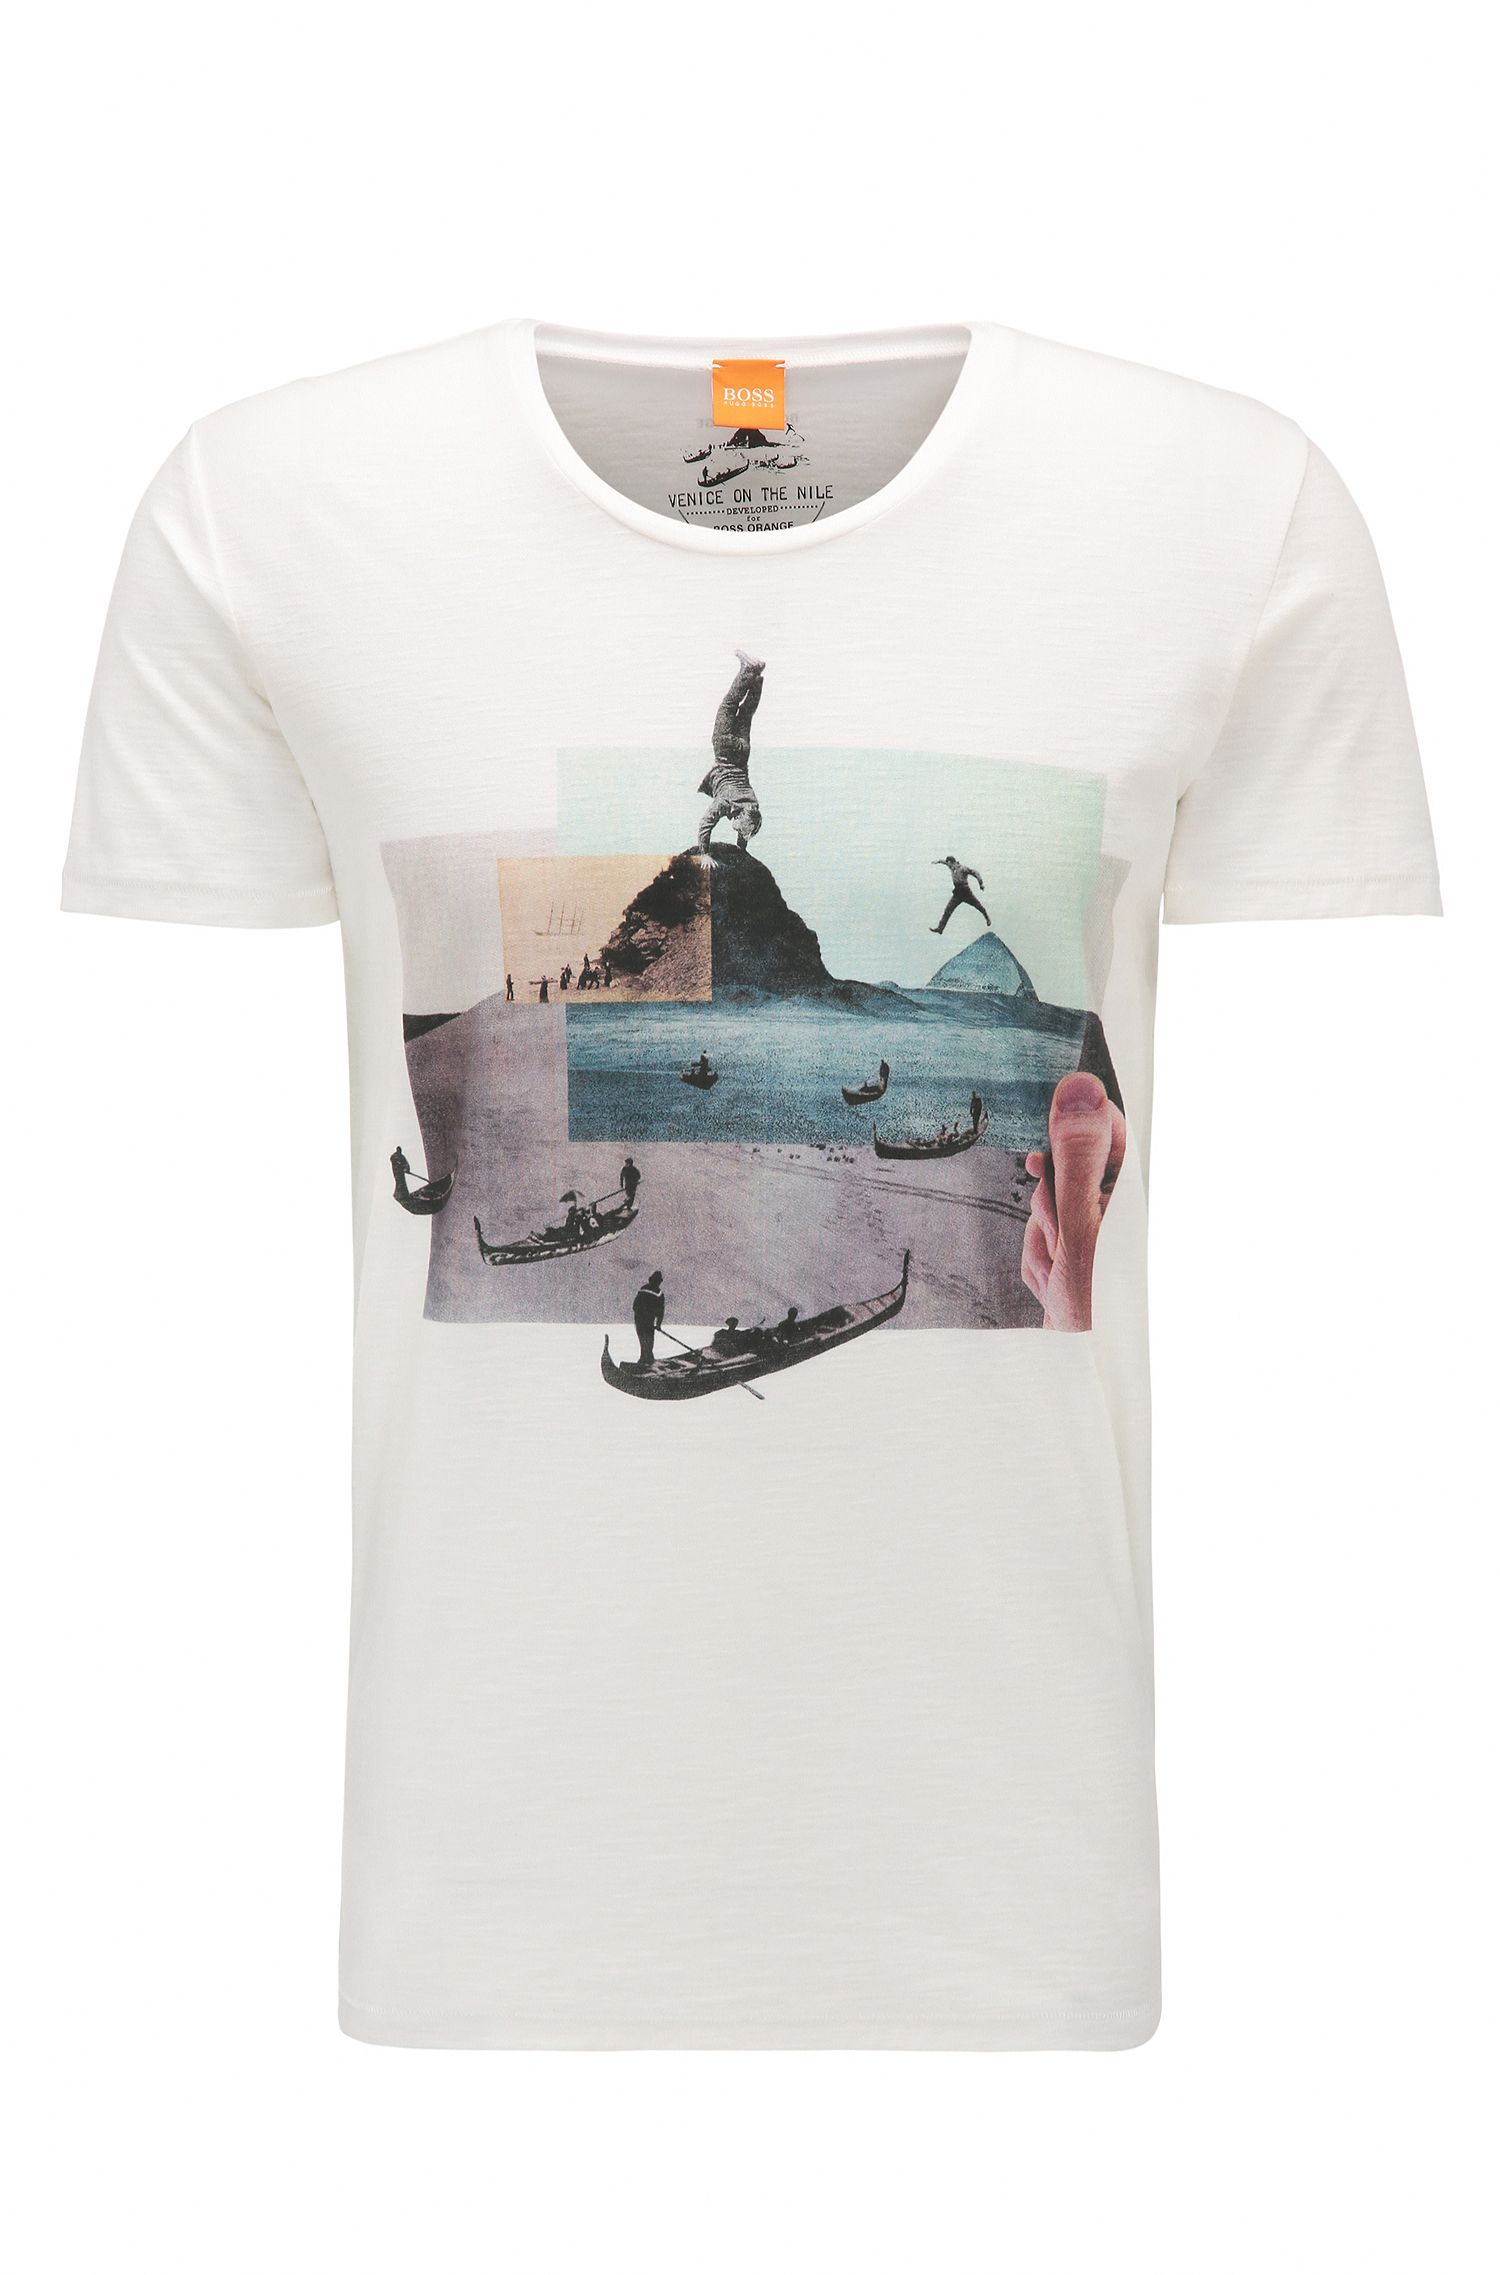 Cotton Jersey Graphic T-Shirt | Thoughts, Natural